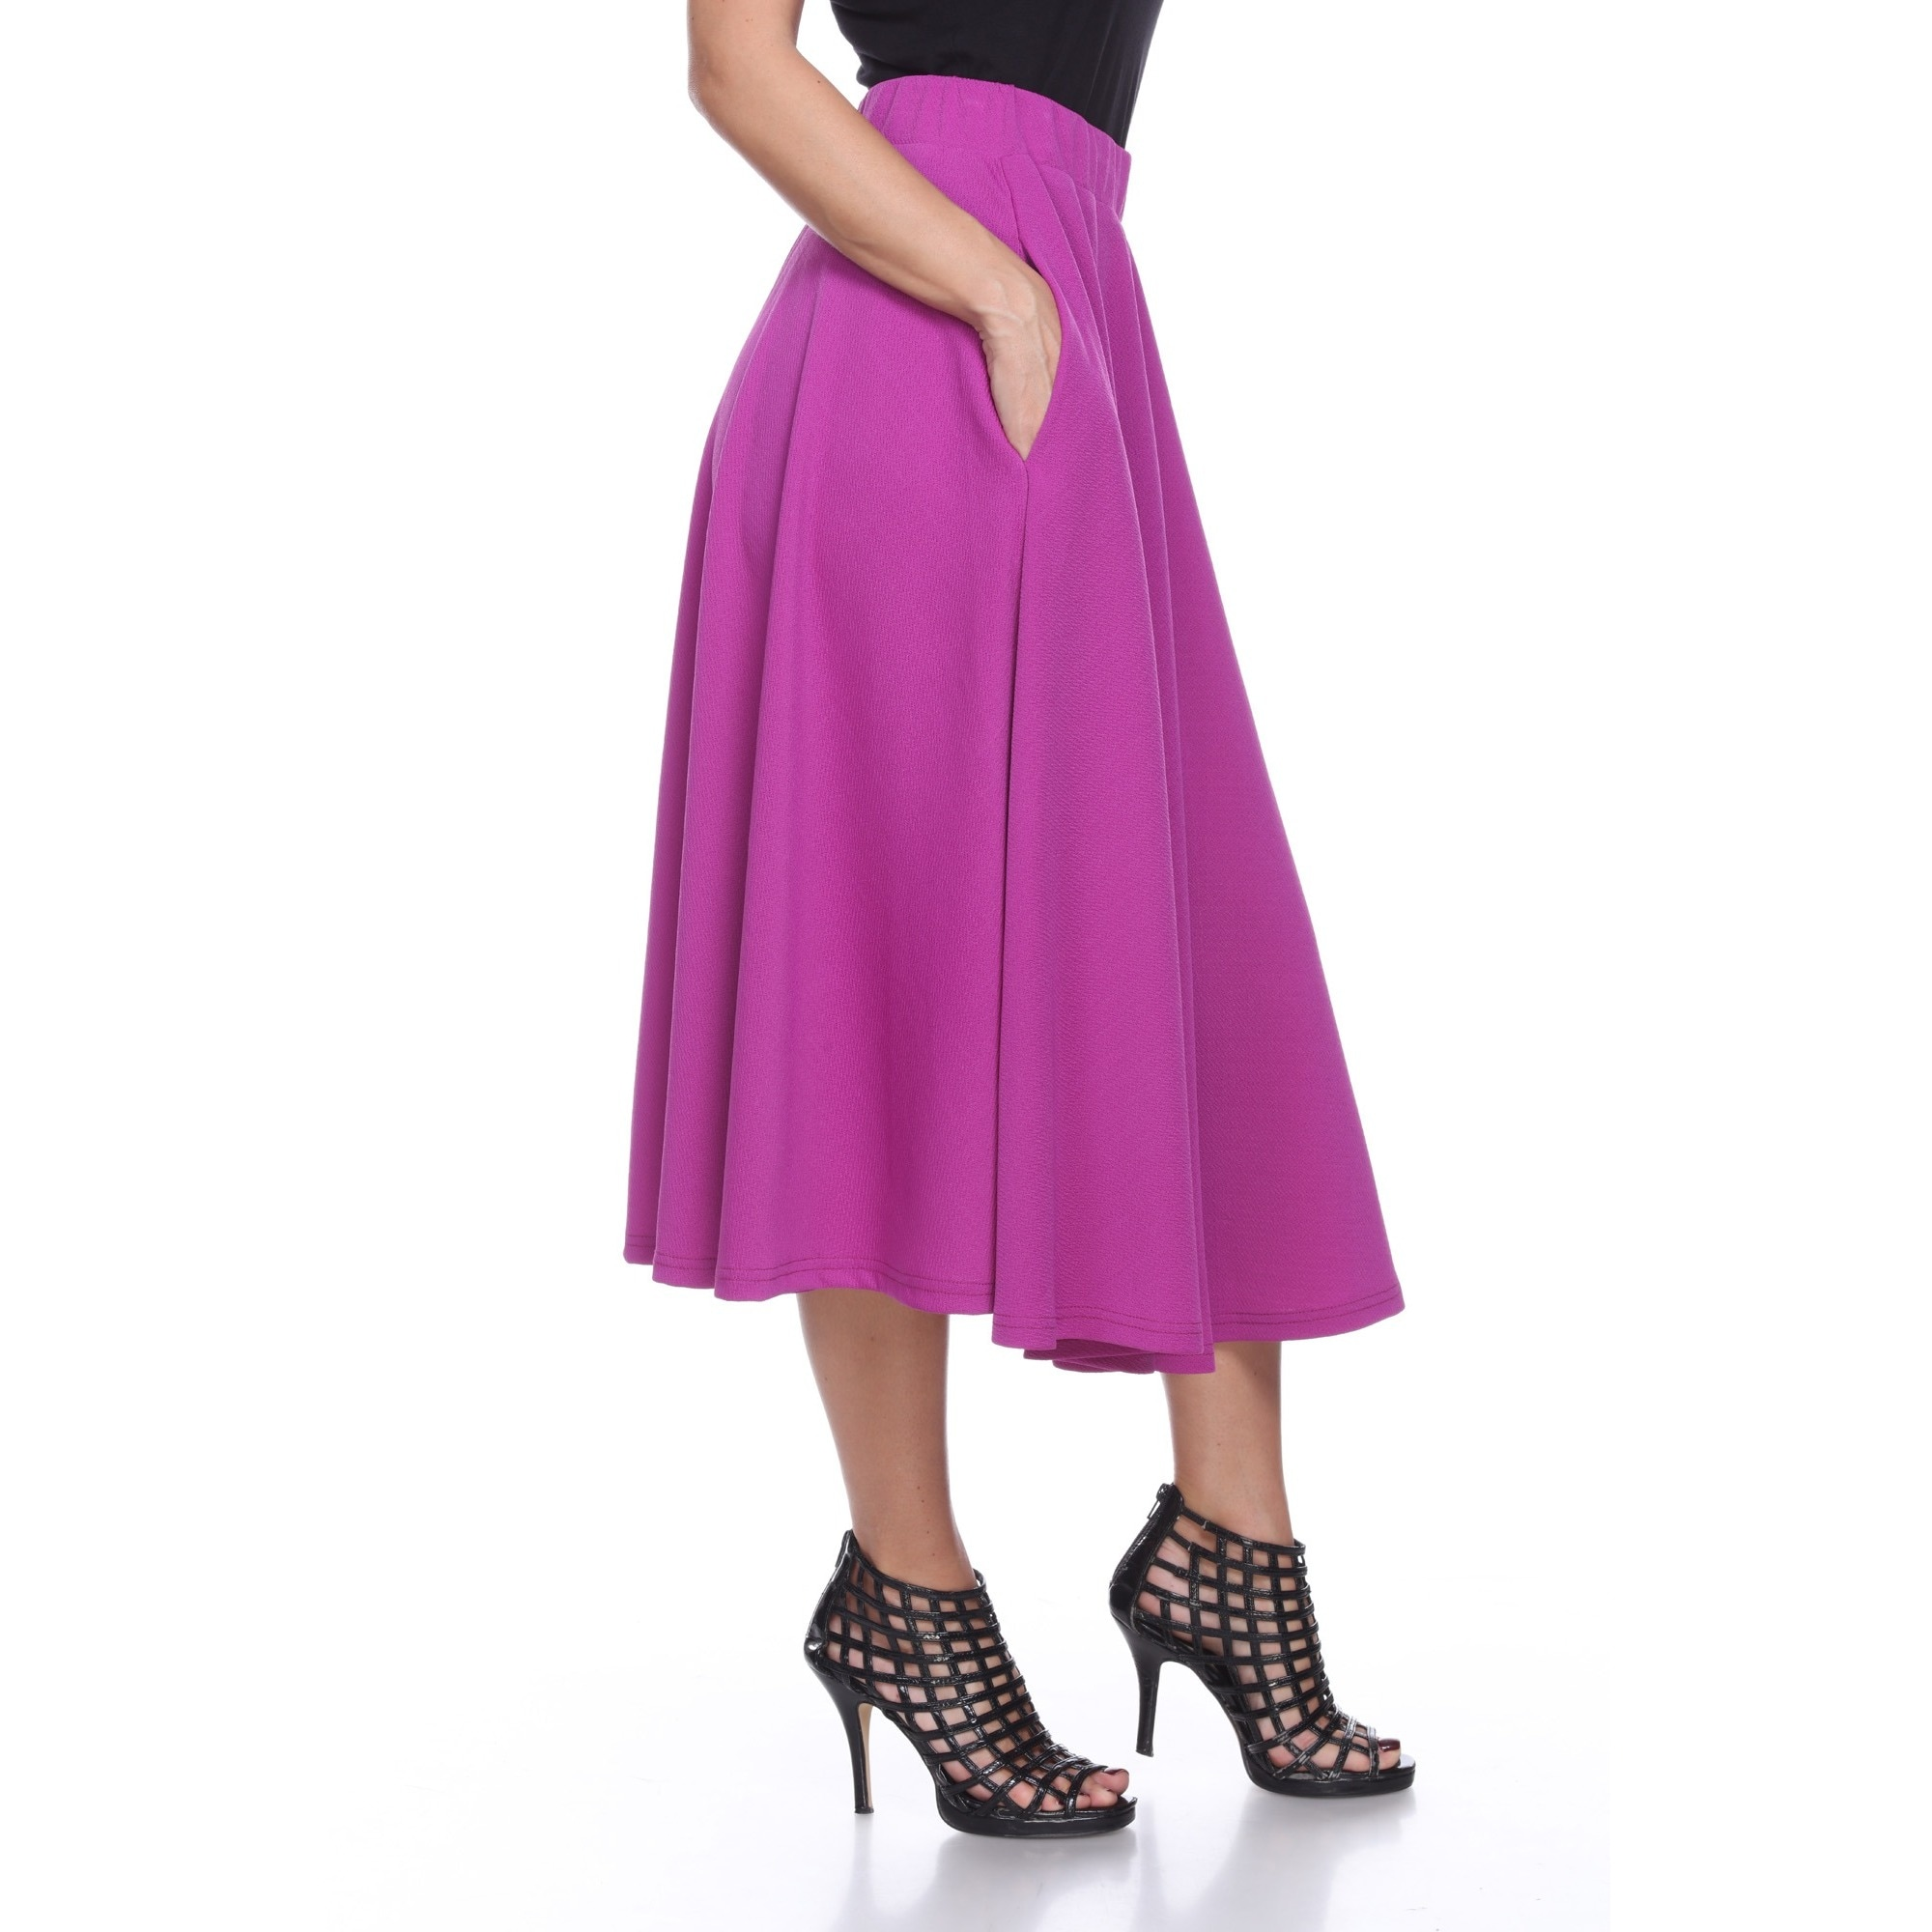 258016276d7d Shop White Mark Women s Tasmin Red Grey Purple Polyester Spandex Midi Skirt  - Free Shipping On Orders Over  45 - Overstock - 13049067